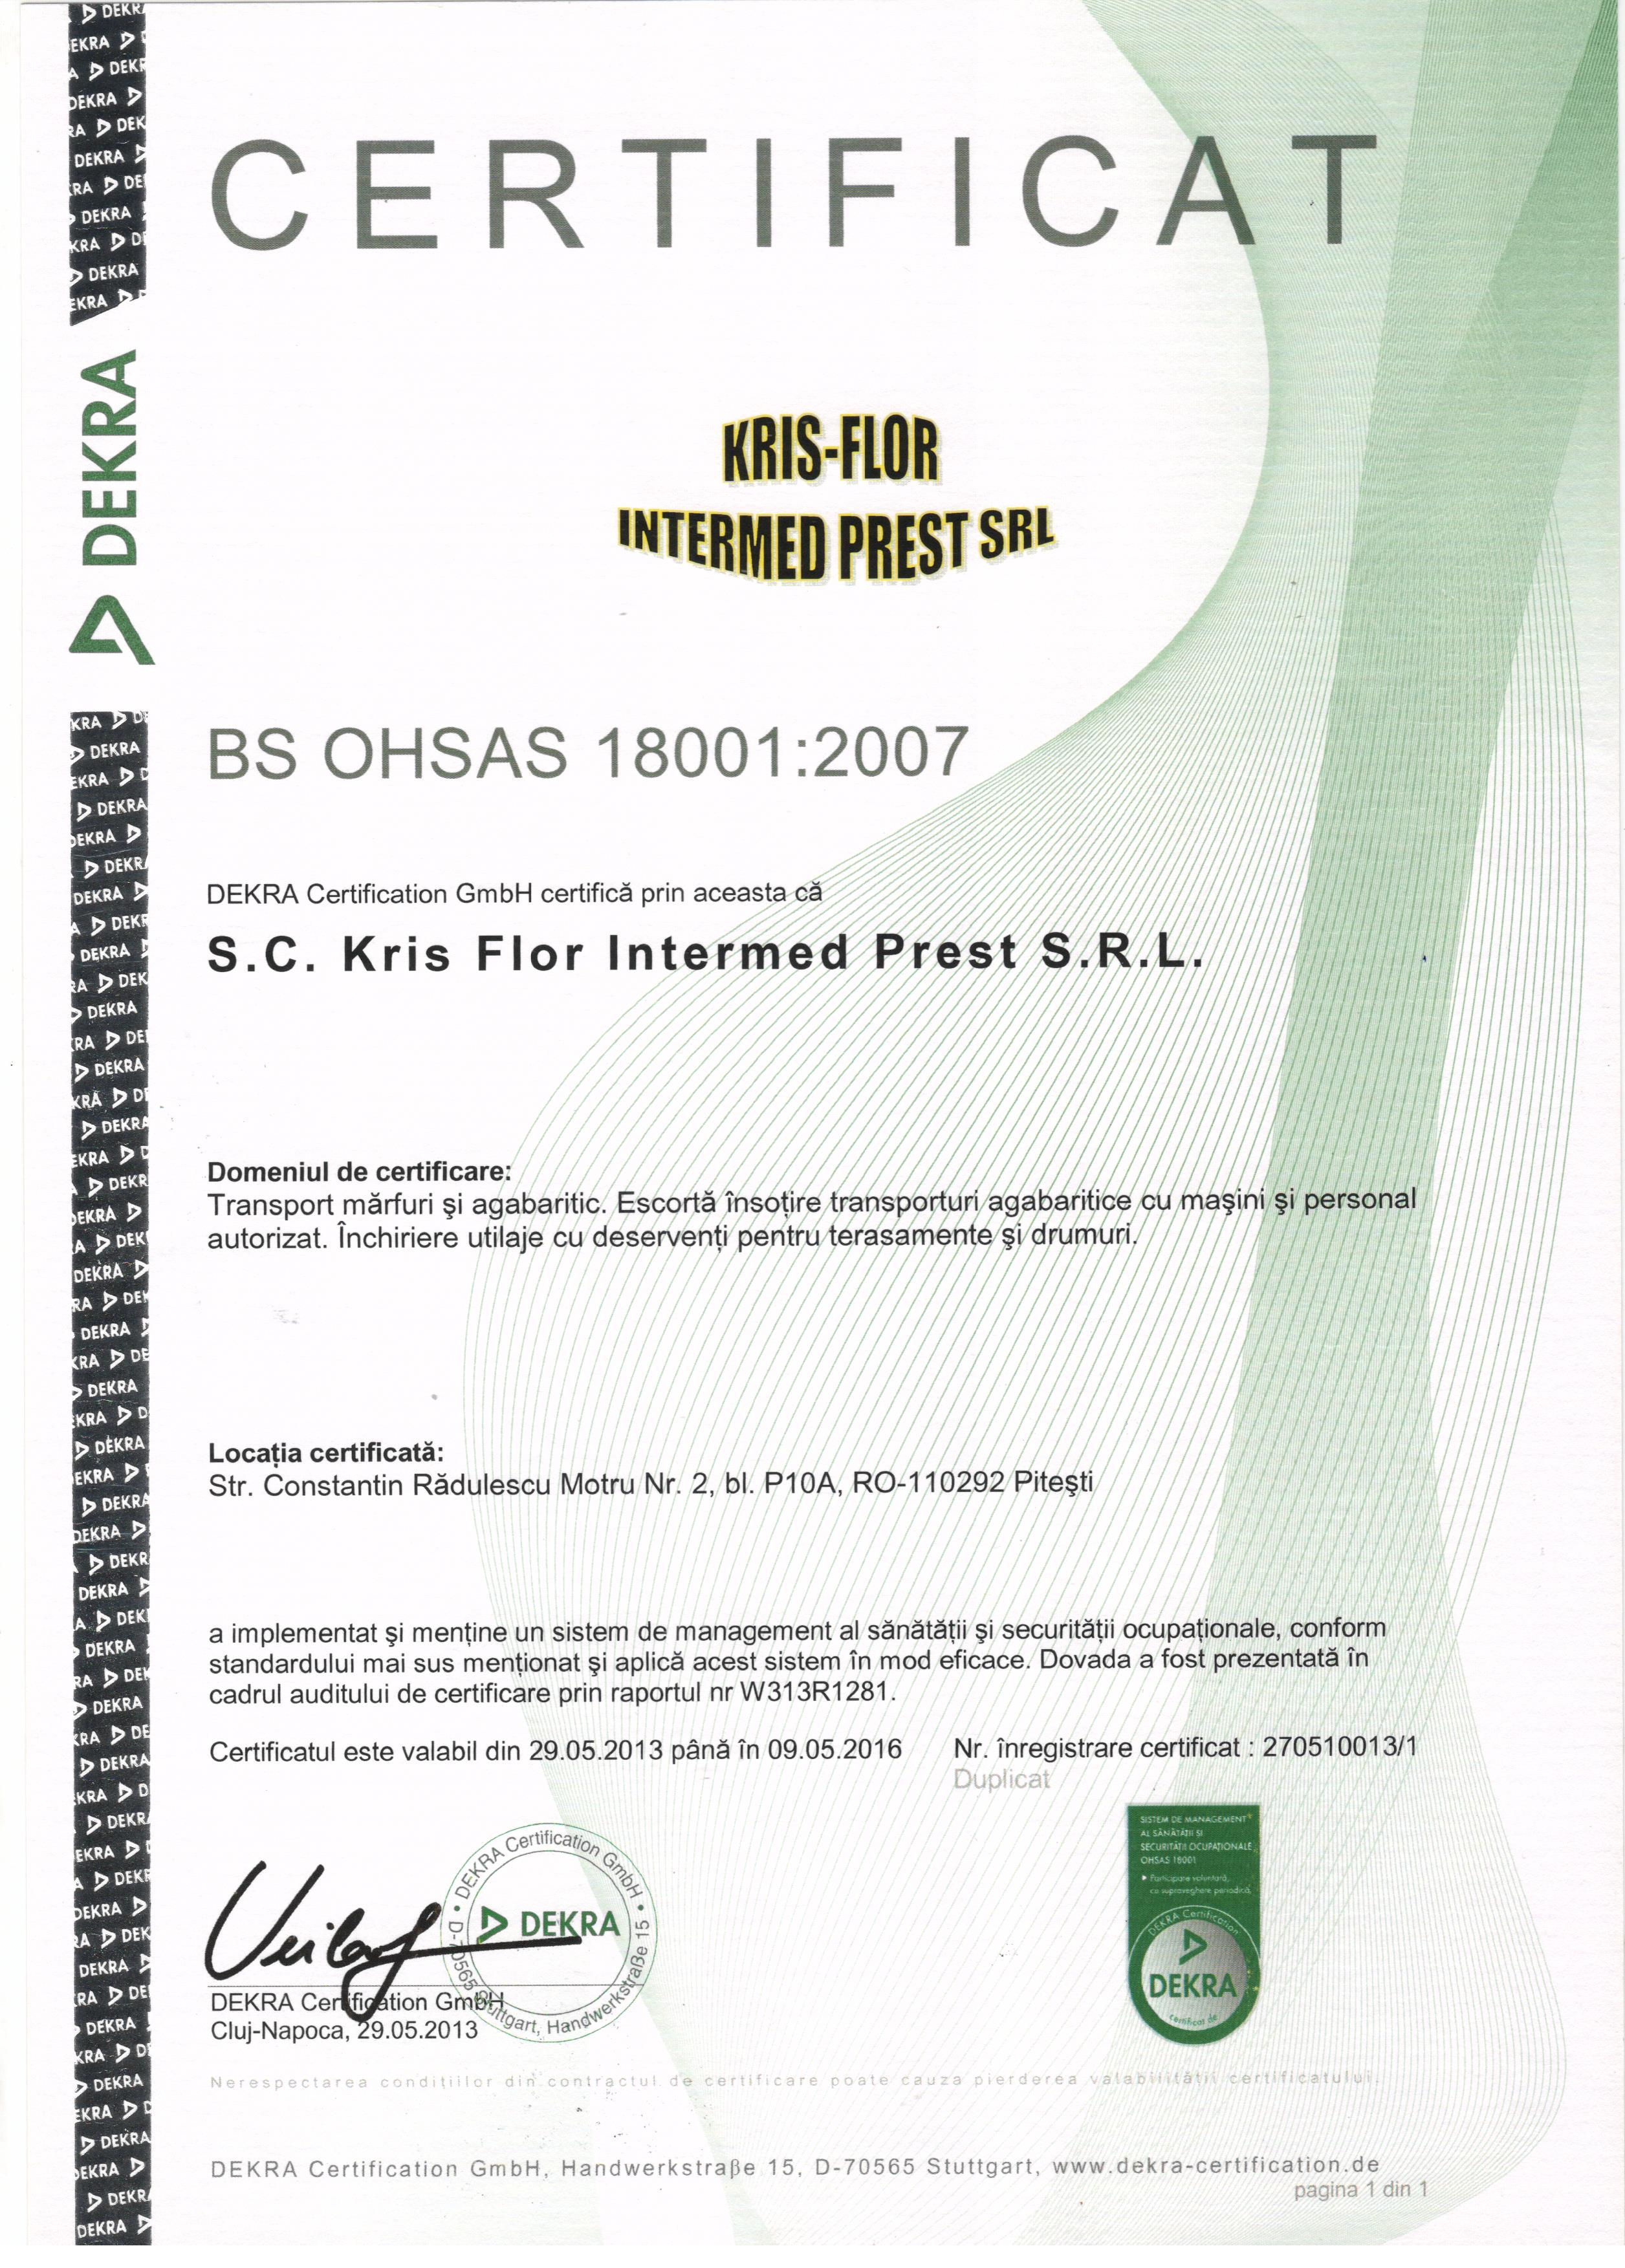 Certification kris flor intermed 18001 1betcityfo Image collections